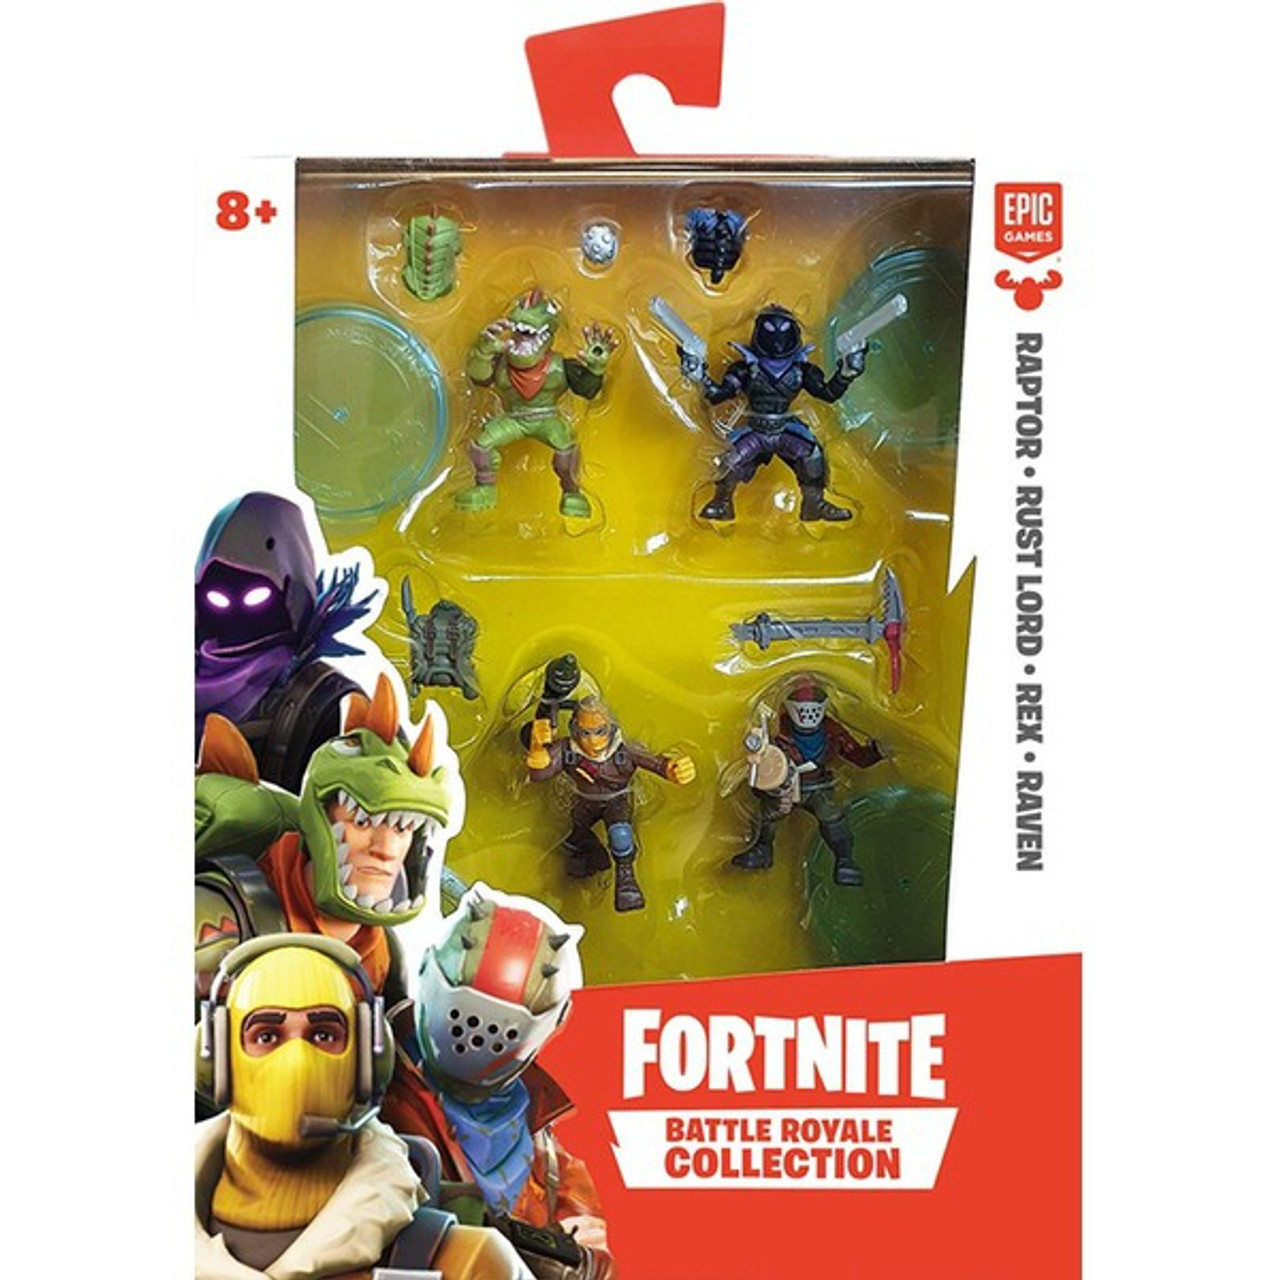 raven Rex Fortnite Battle Royale collection rust lord Epic Games New Raptor